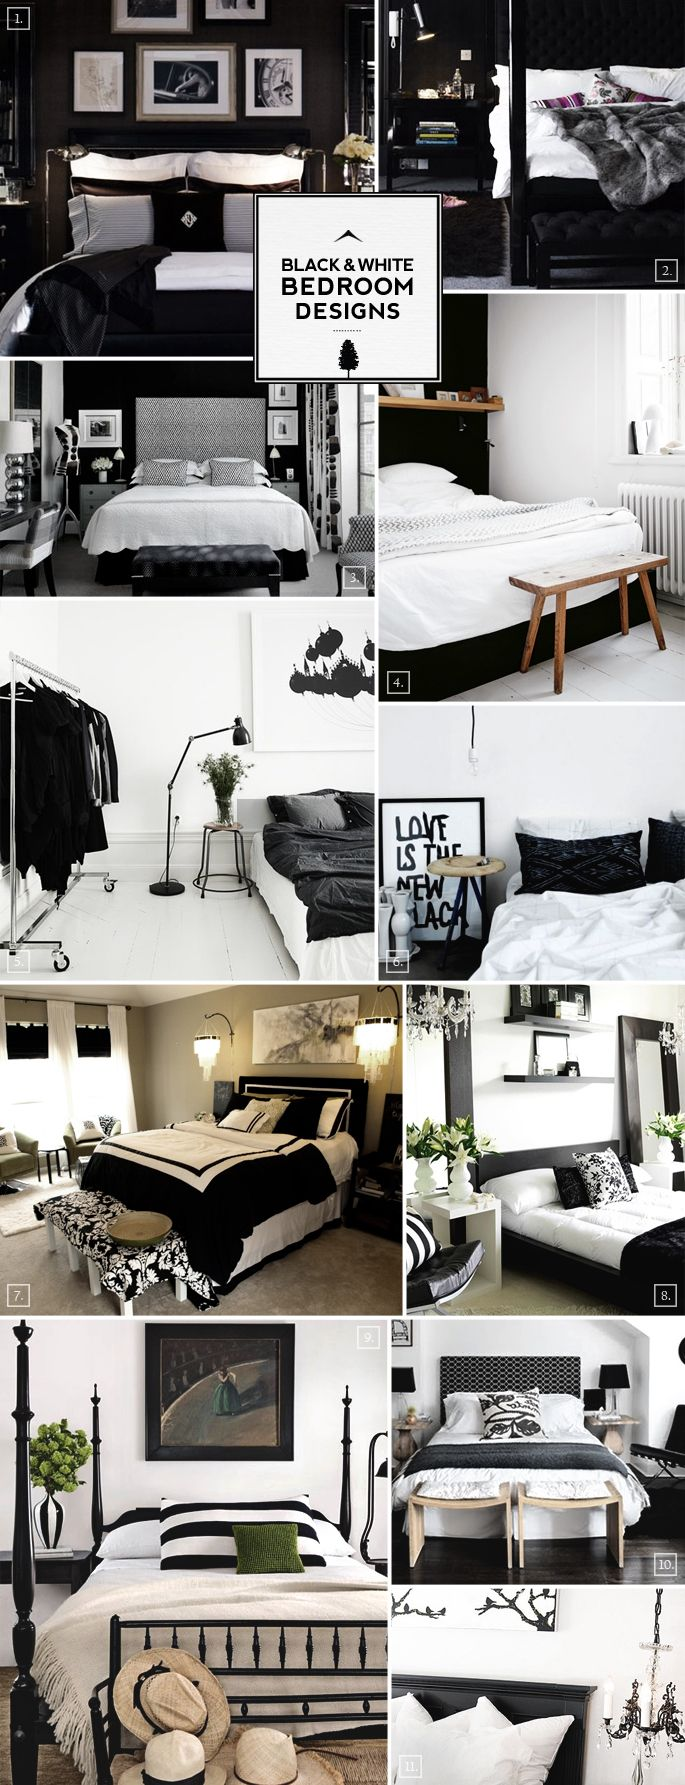 Bedroom designs ideas black and white - Black And White Bedroom Designs And Decor Ideas